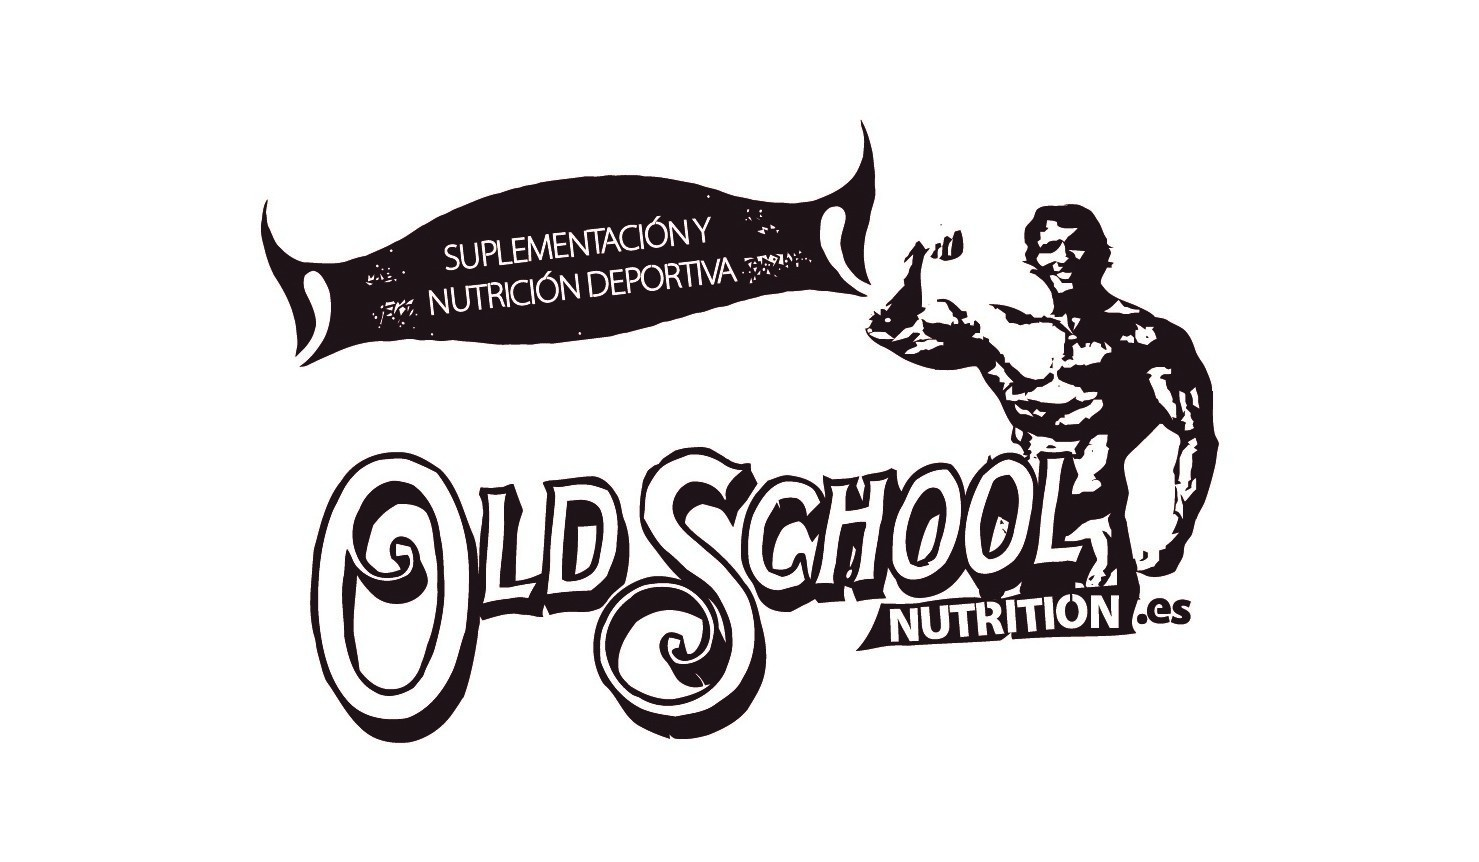 OLD SCHOOL NUTRITION